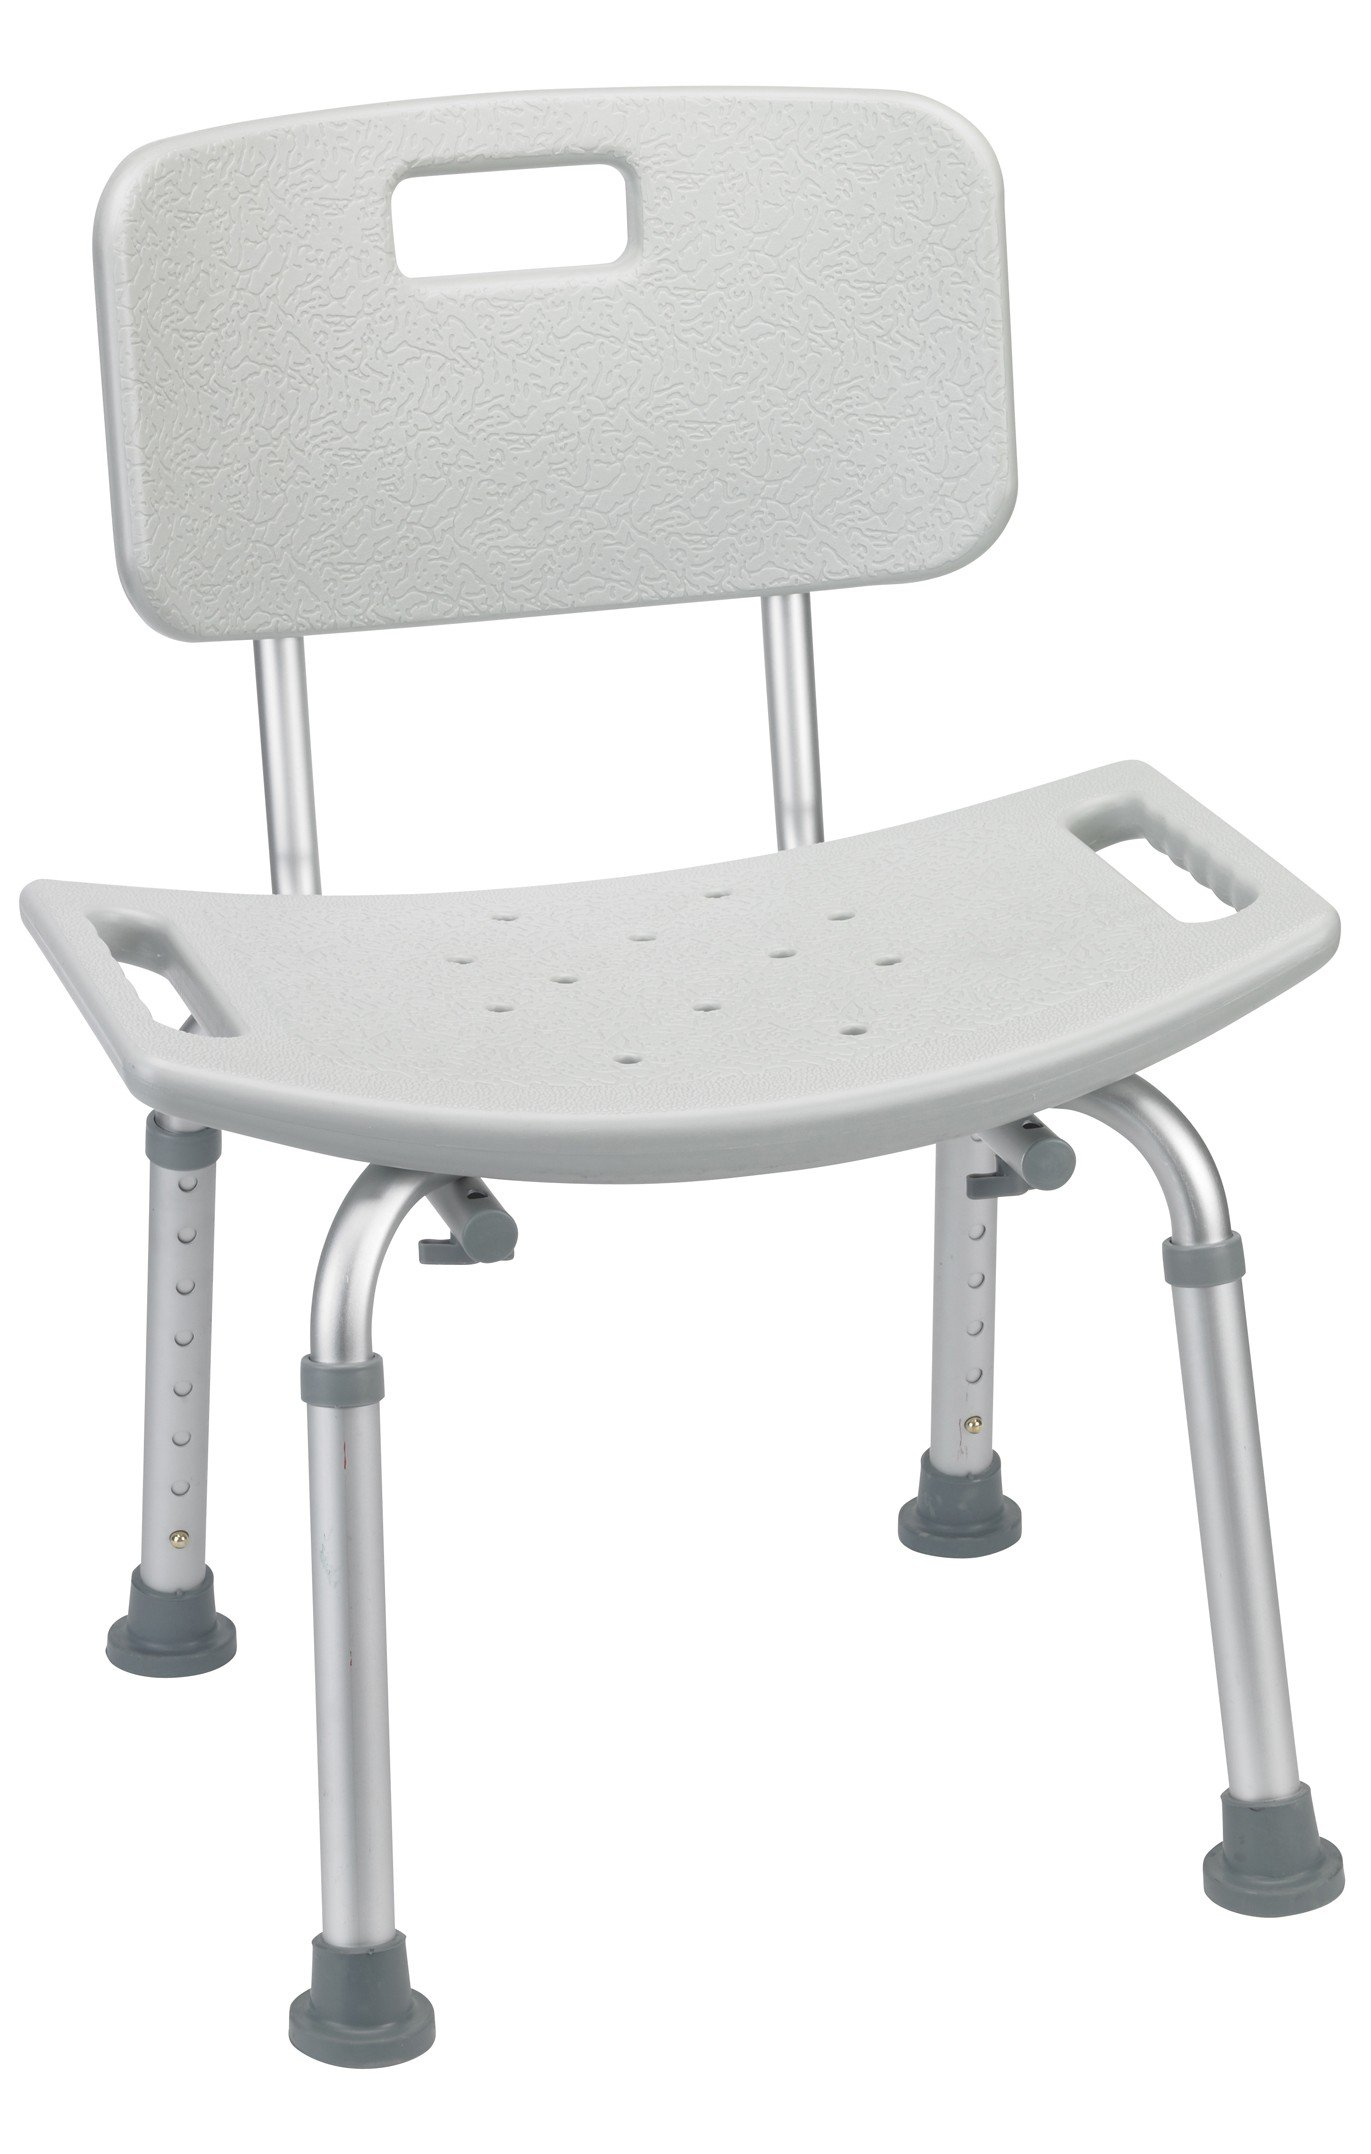 Secure BSCB-1 Adjustable Shower and Bath Chair with Seat Back - Medical Safety Bathroom Mobility Aid - Tool-Free Assembly